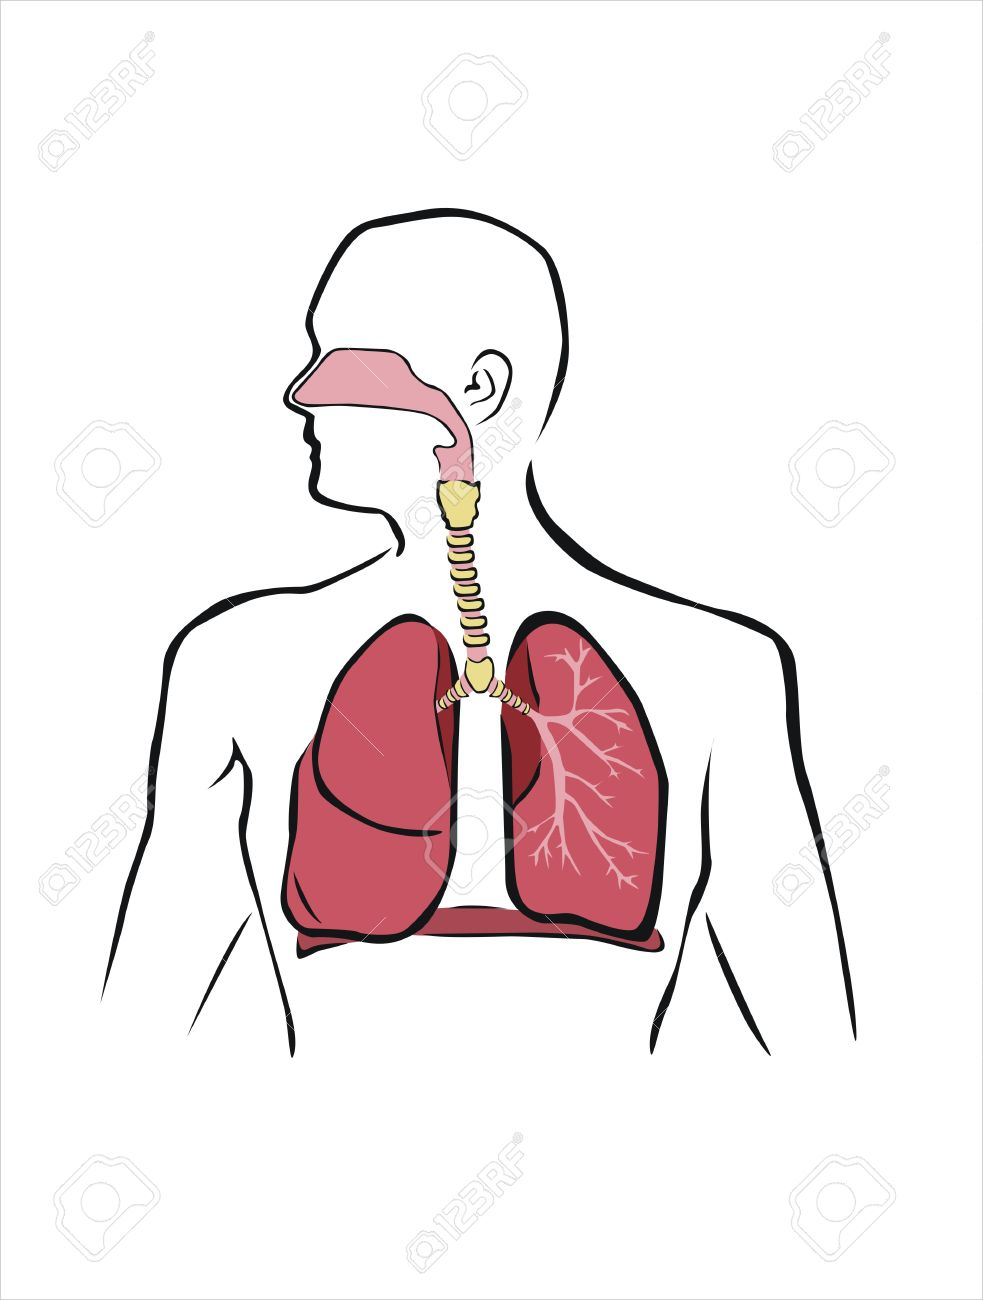 Respiratory system clipart 2 » Clipart Station.